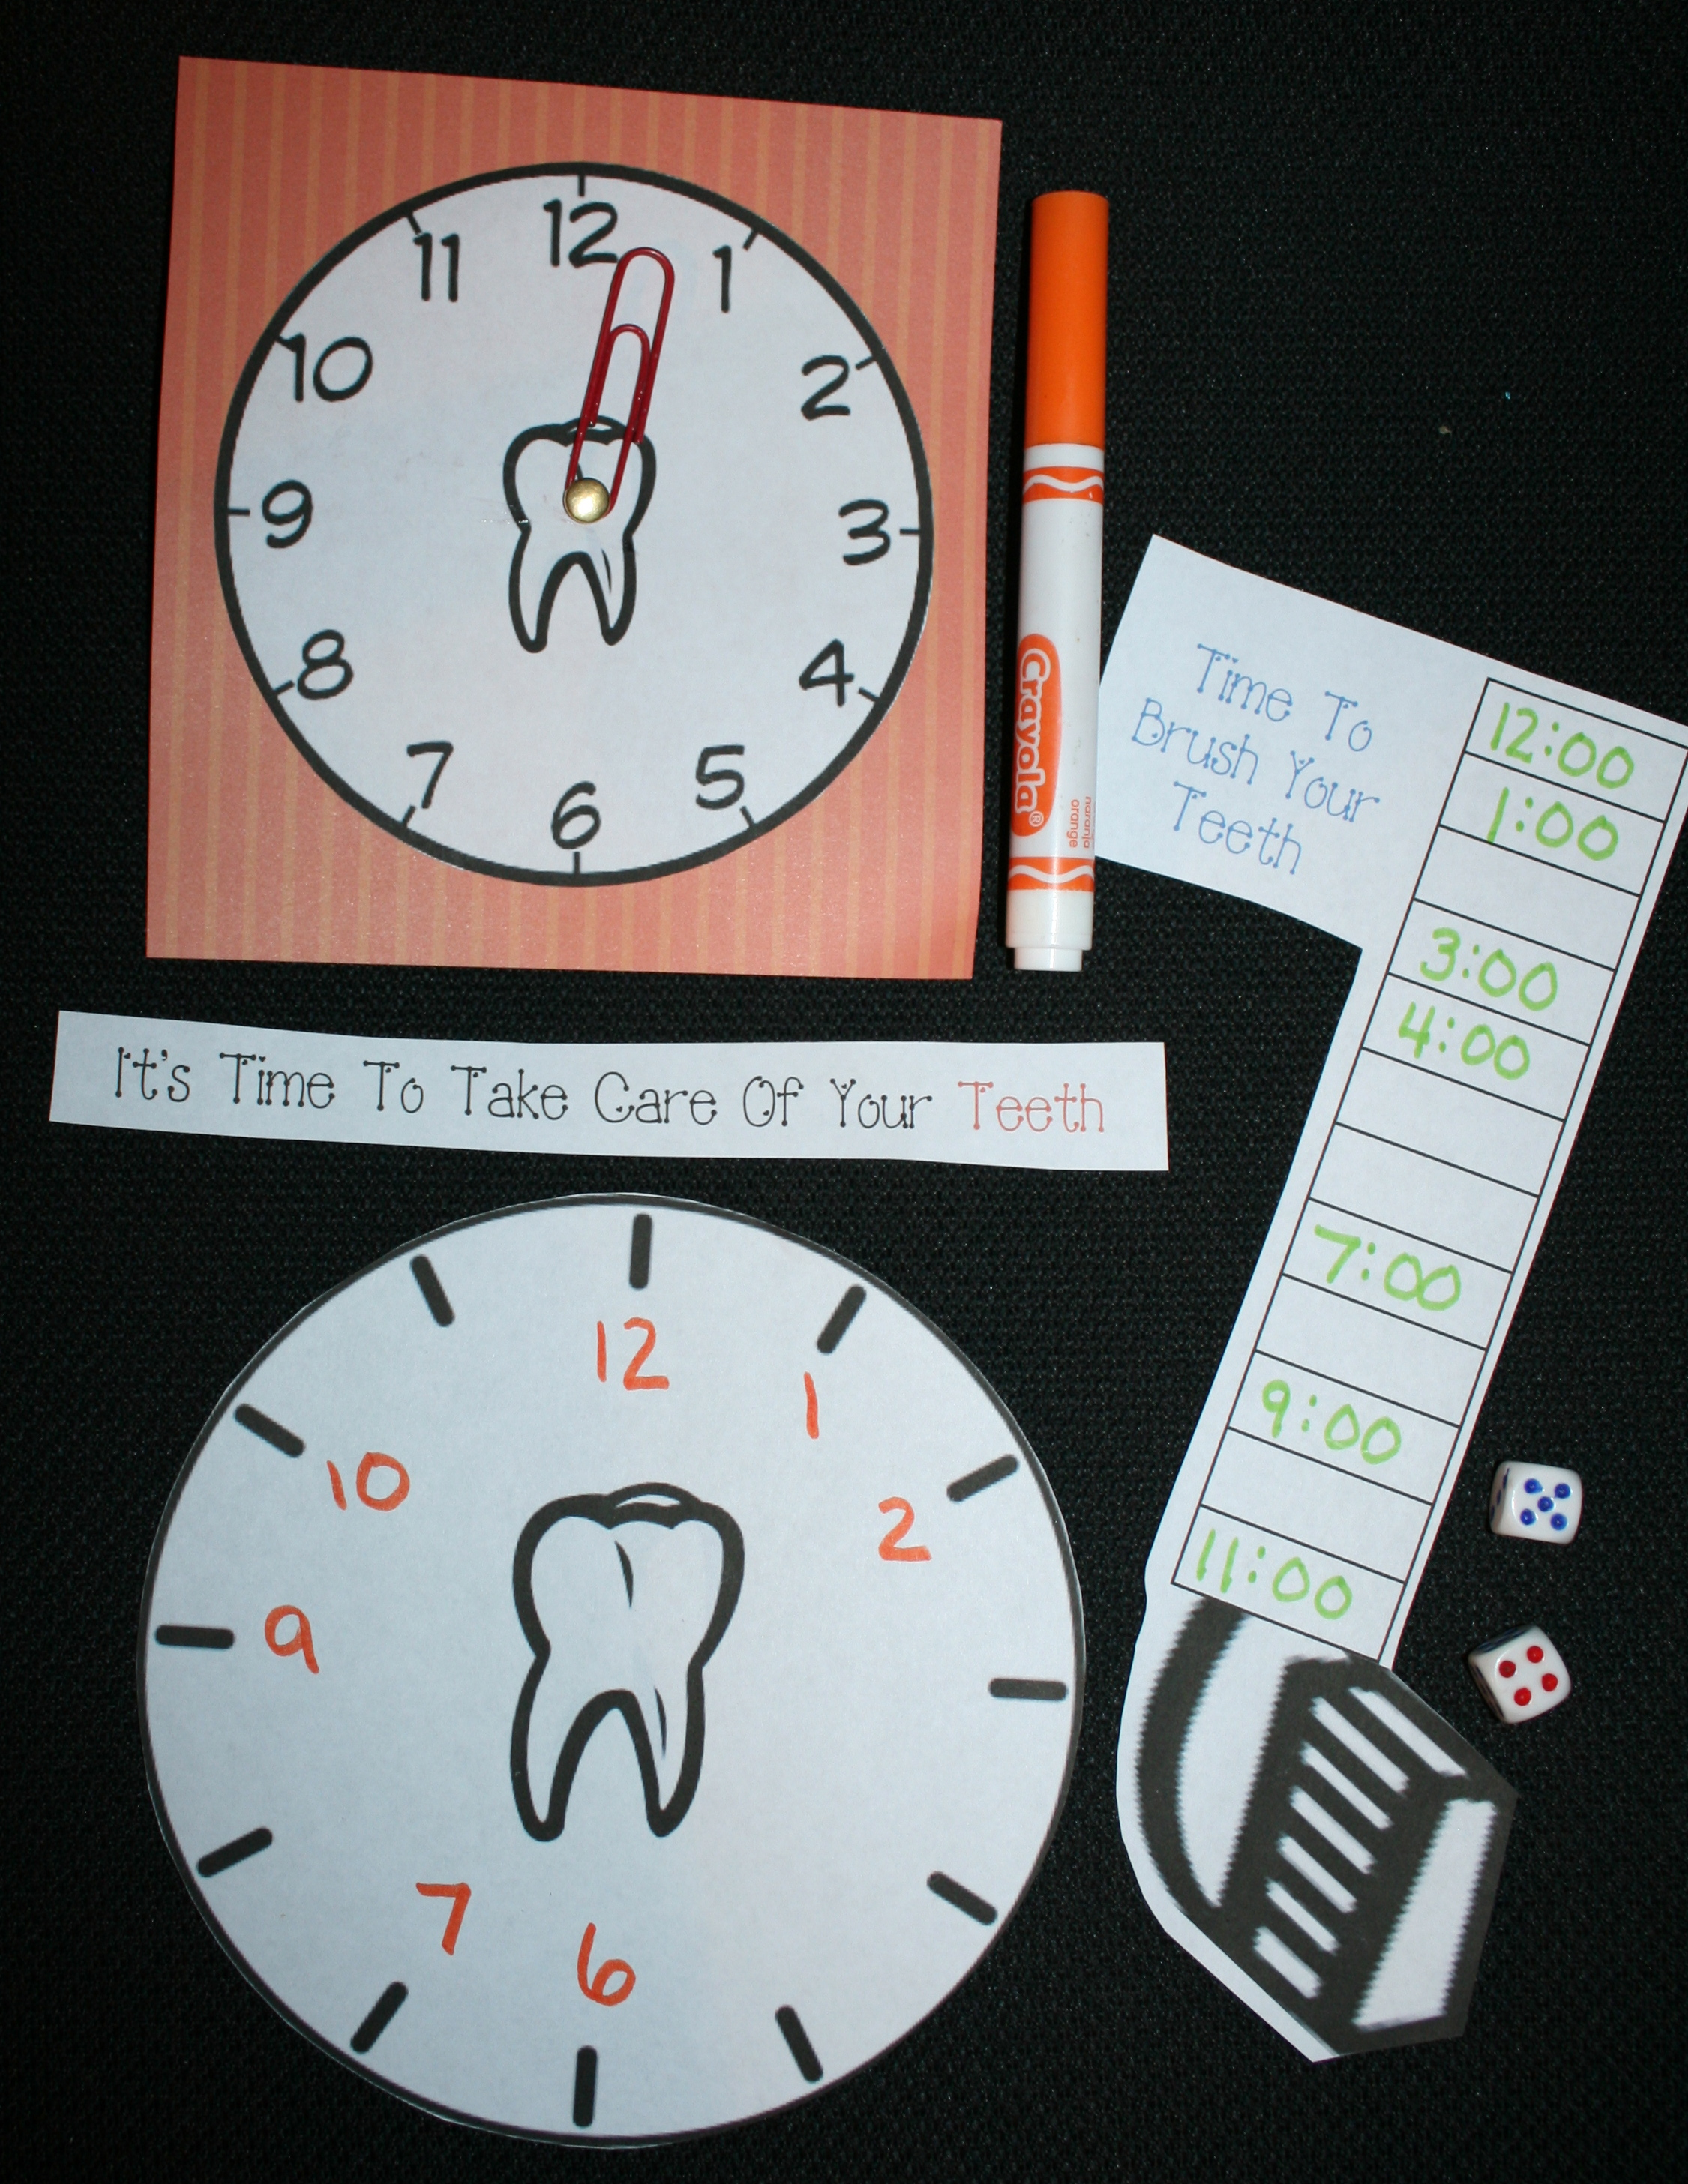 dental hygiene activities, telling time games, free common core lessons for first grade, telling time to the hour lessons, tooth activities, tooth games, dental hygiene month activities,